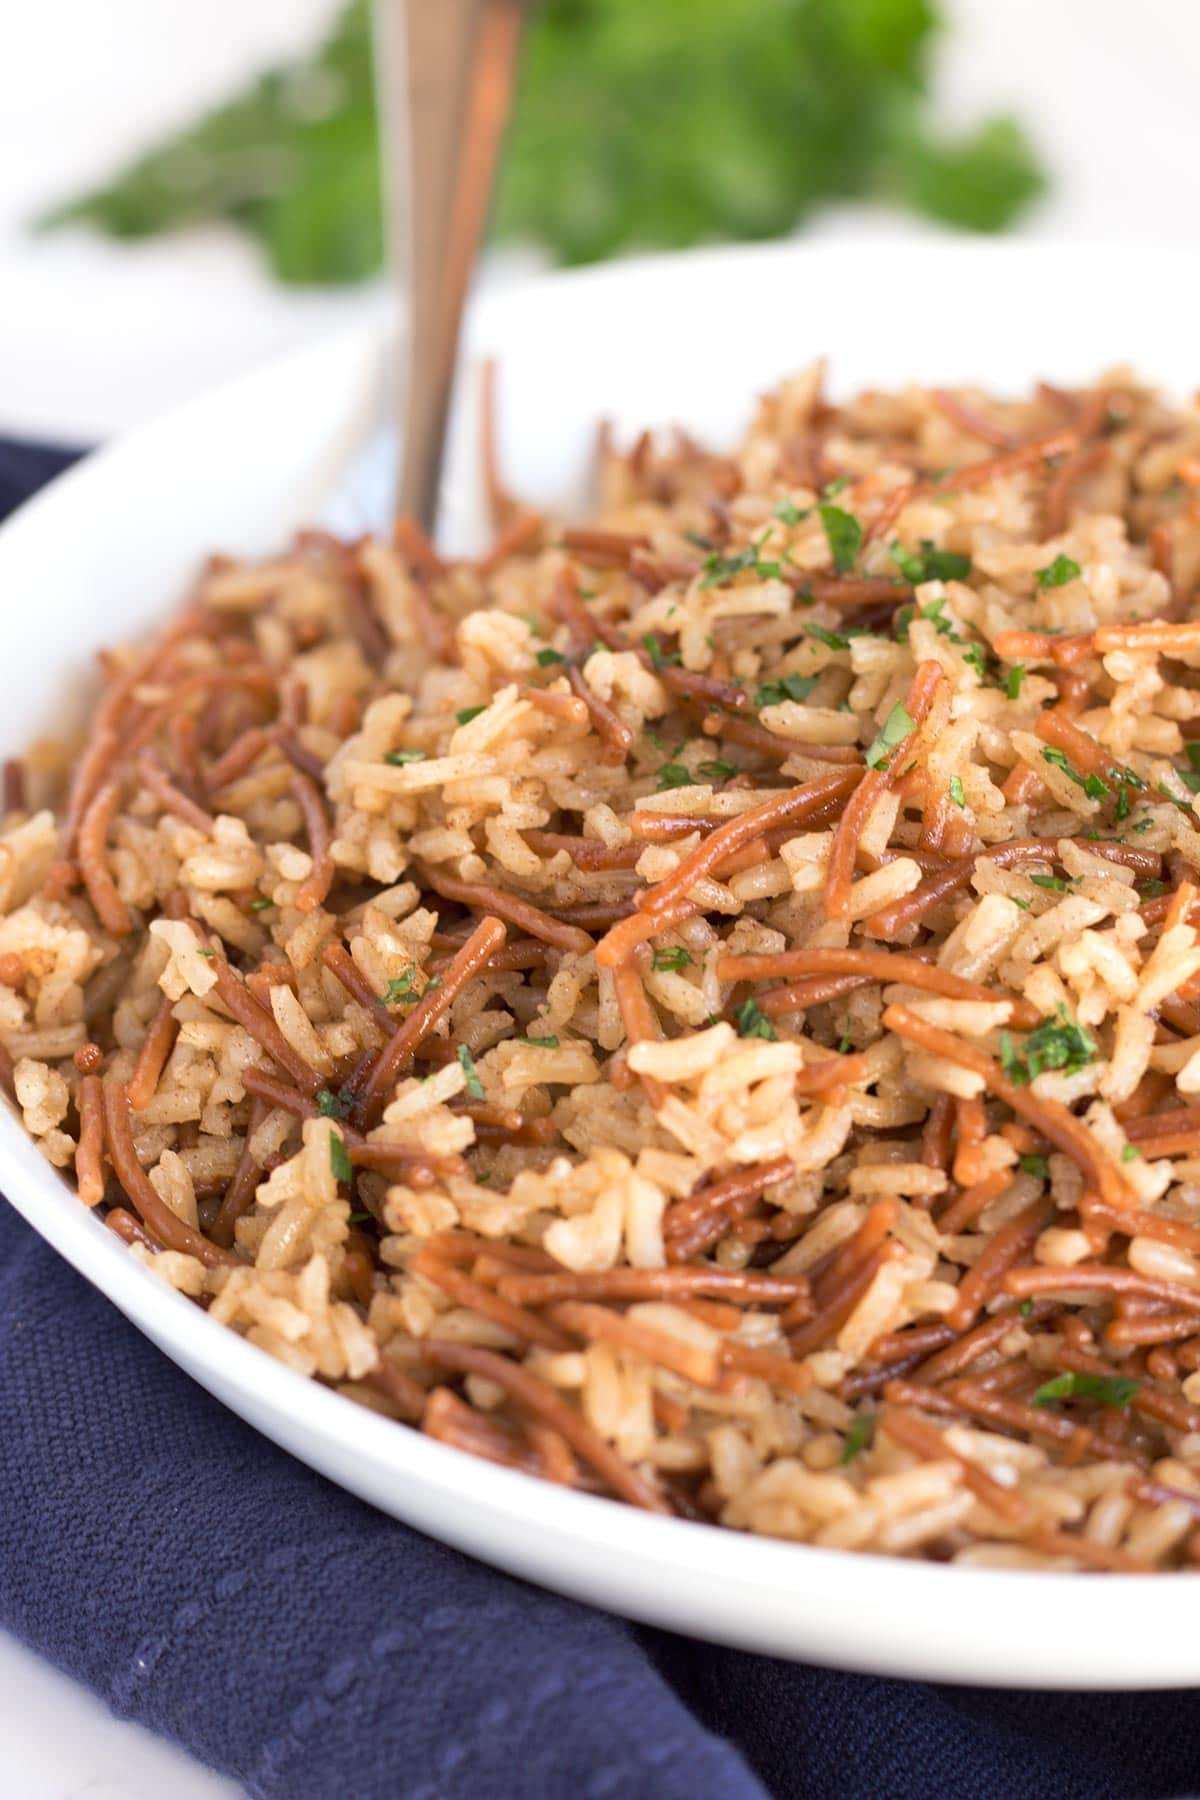 Classic rice pilaf in a bowl with a serving spoon.